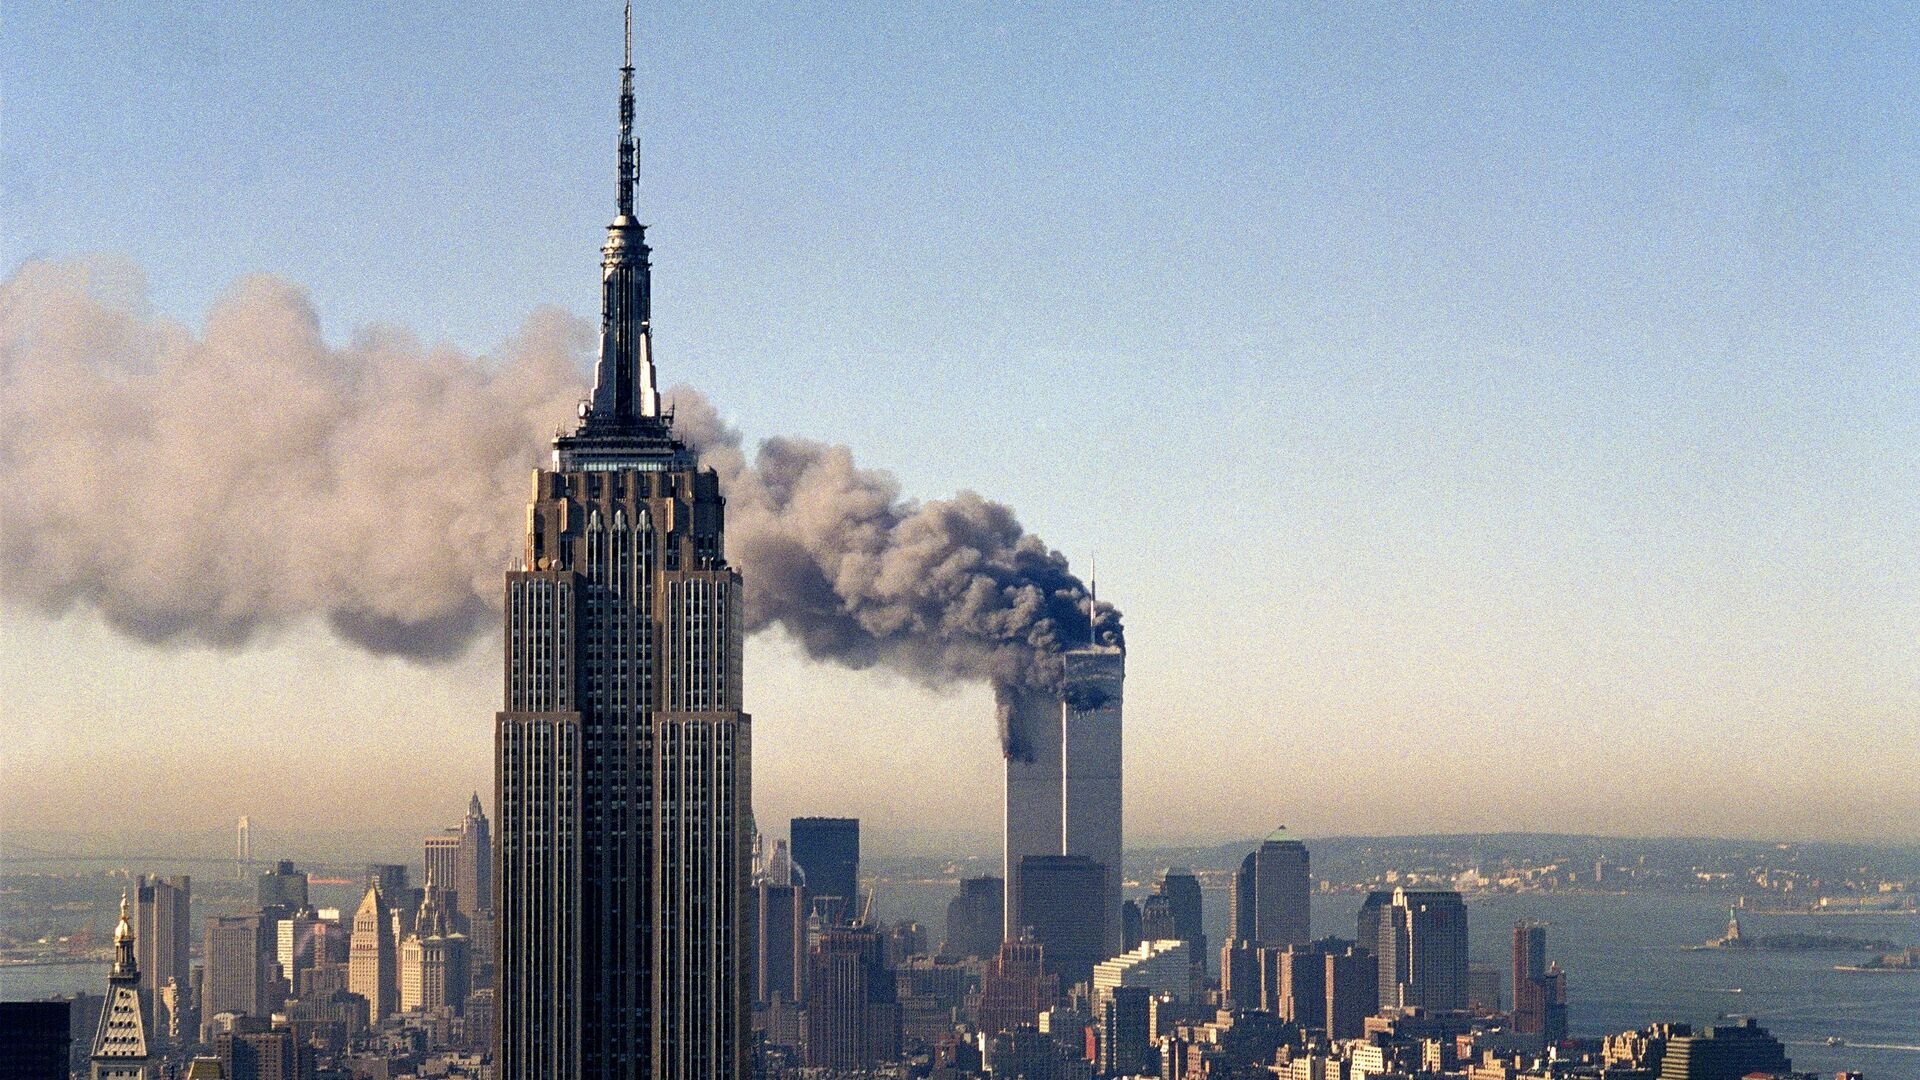 In this Sept. 11, 2001, file photo, the twin towers of the World Trade Center burn behind the Empire State Building in New York. - Sputnik International, 1920, 12.09.2021